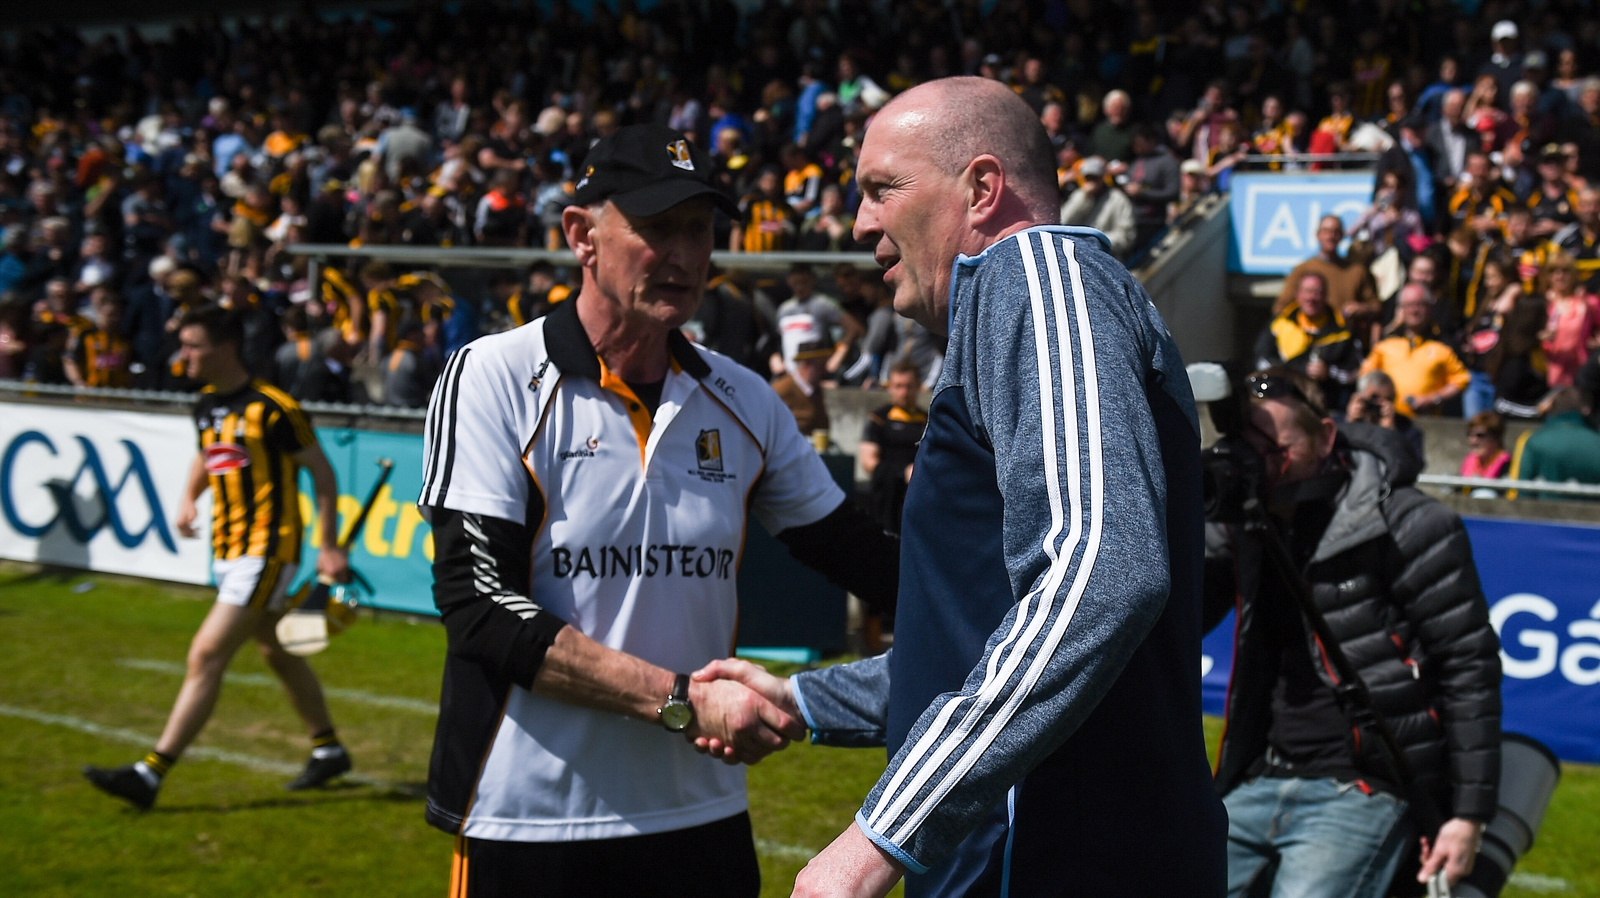 Image - Gilroy shakes hands with Kilkenny manager Brian Cody after their sides' 2018 thriller